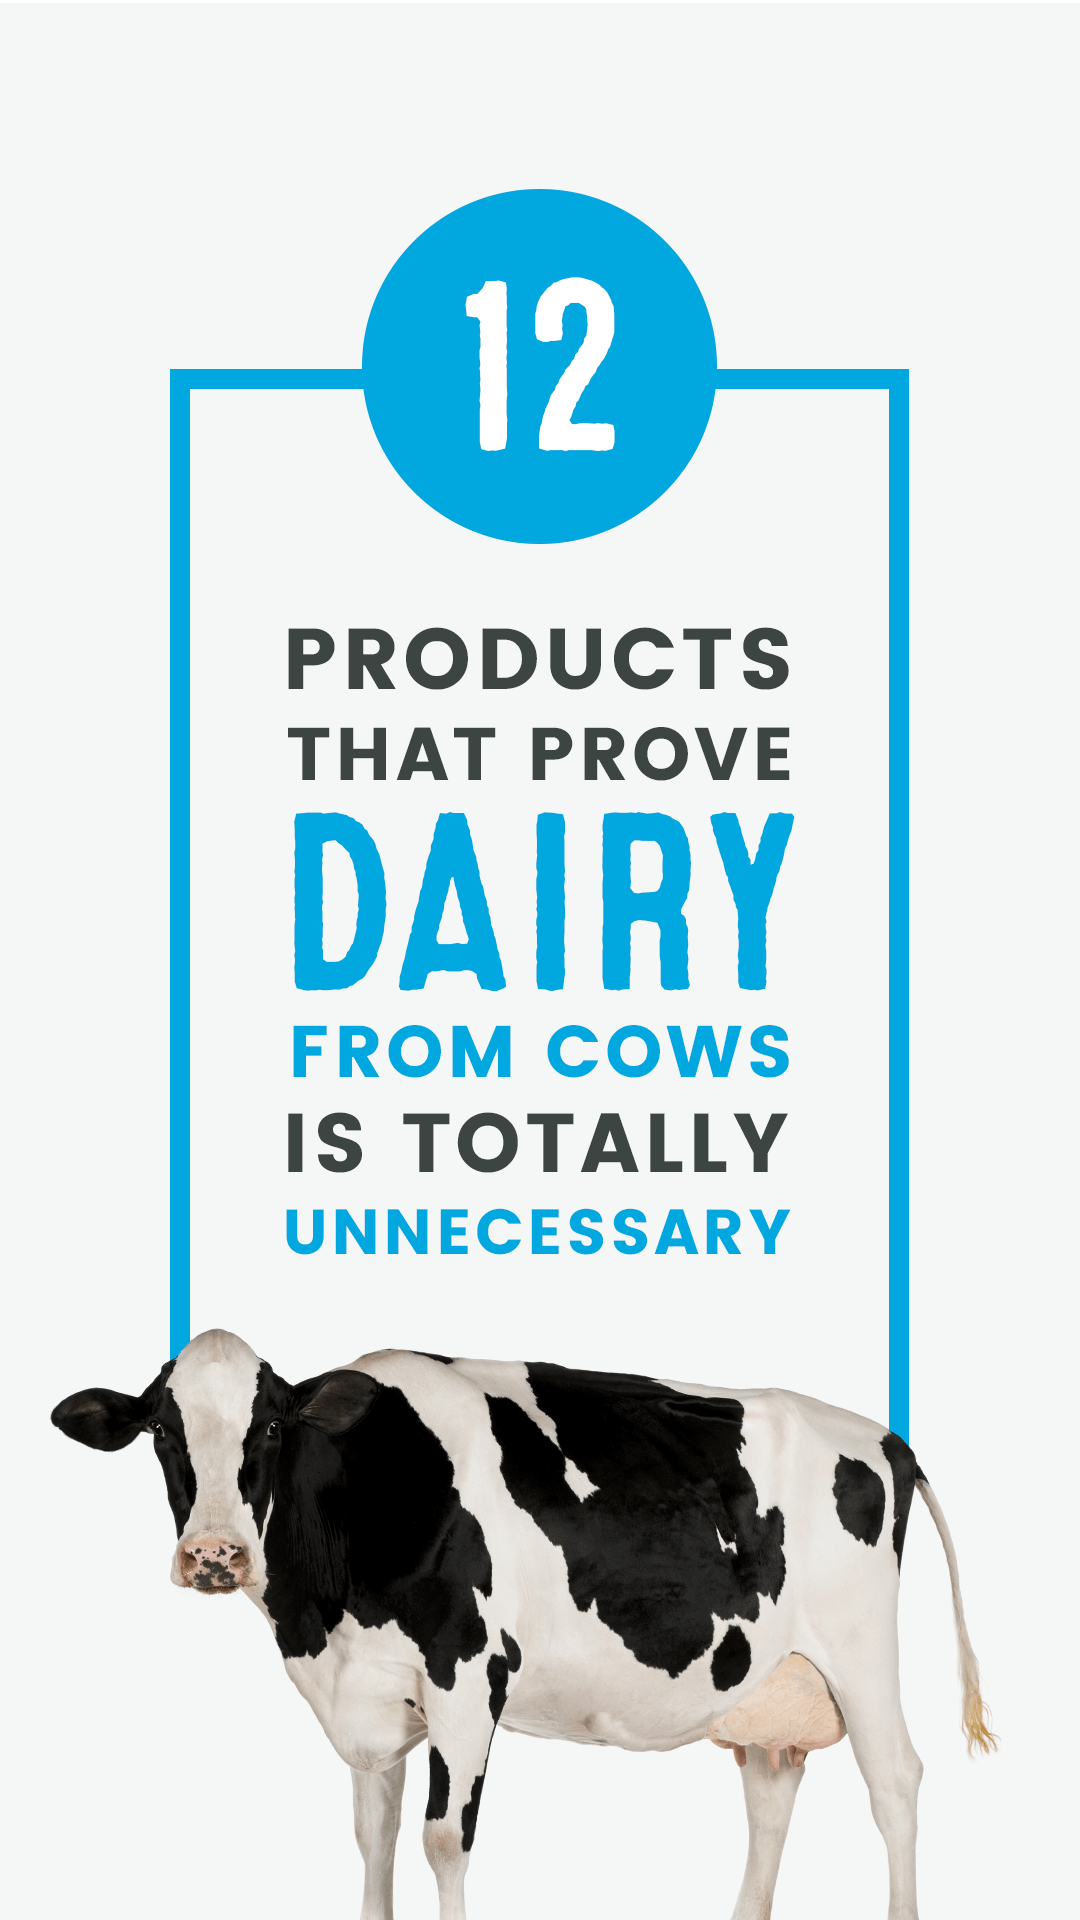 12 Products That Prove Dairy From Cows Is Totally Unnecessary